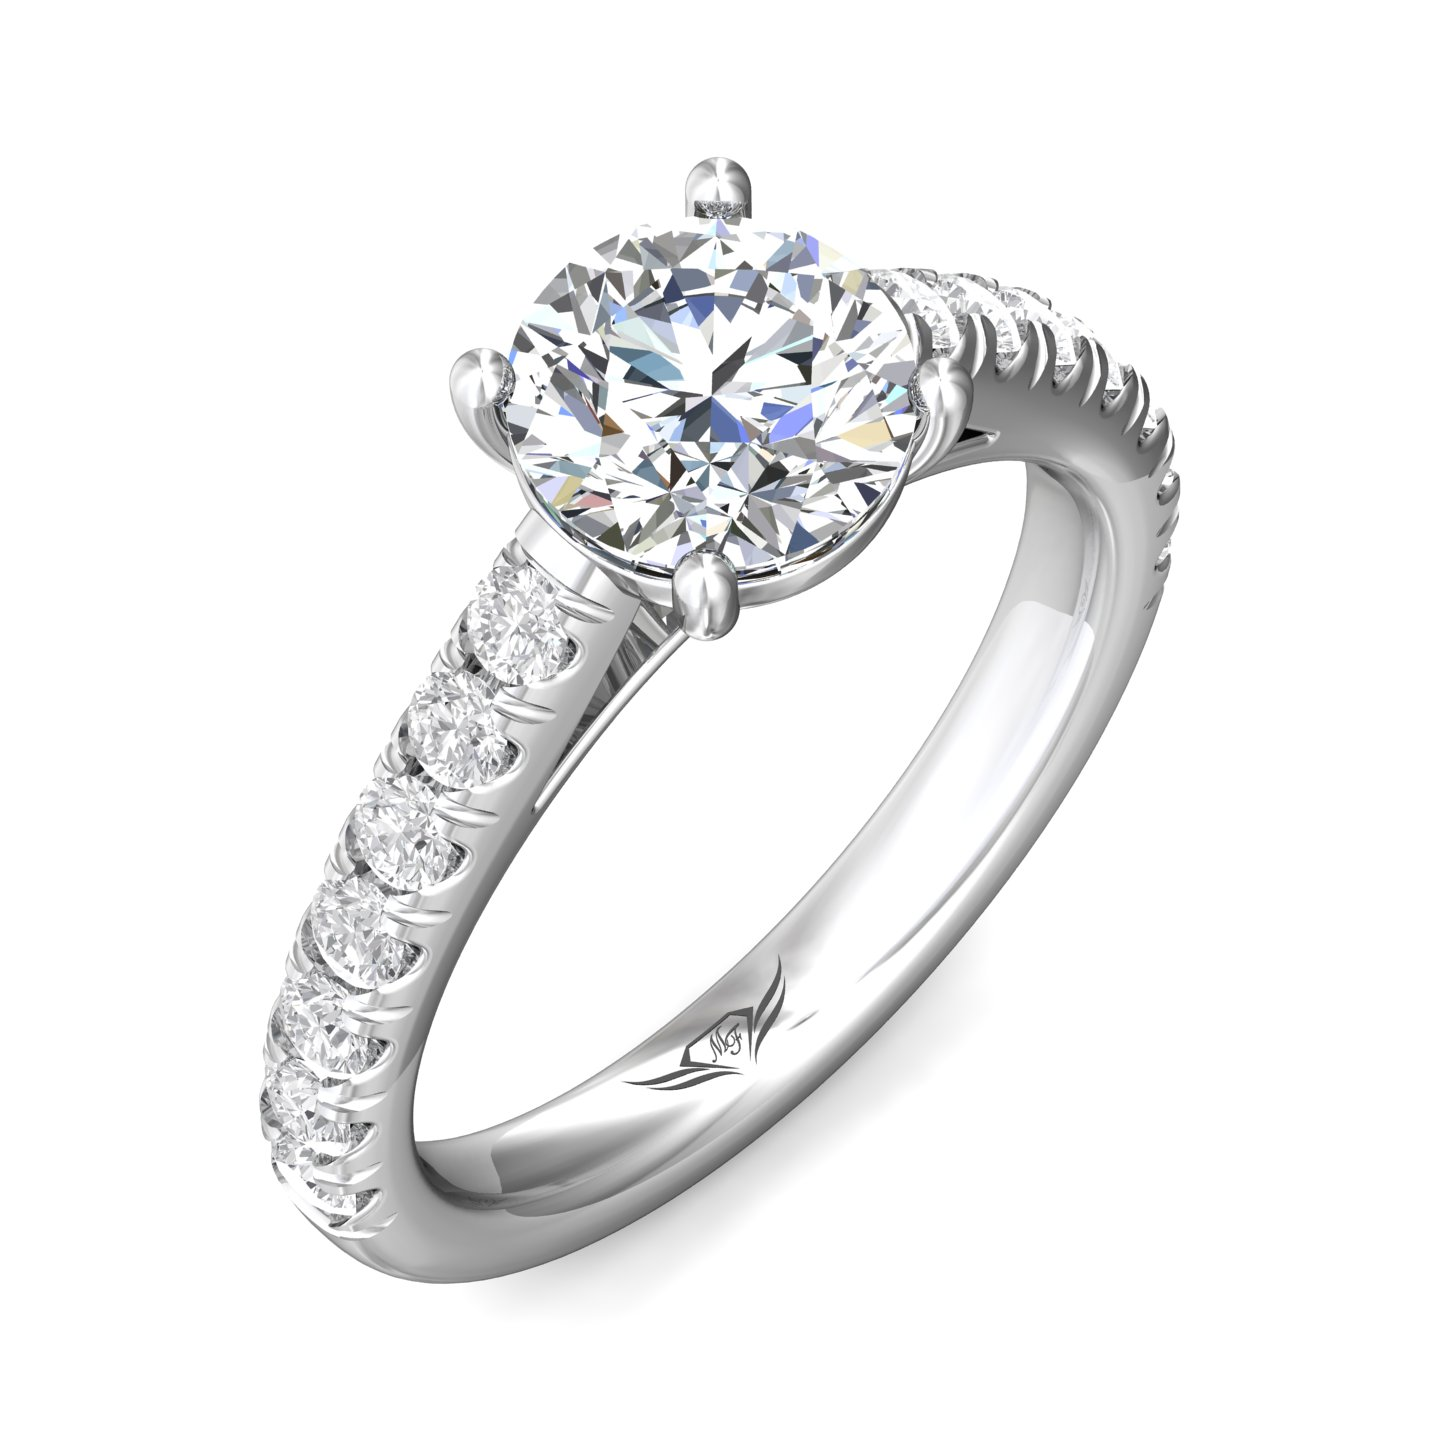 Rings - 14K White Gold FlyerFit Micropave Engagement Ring - image 5